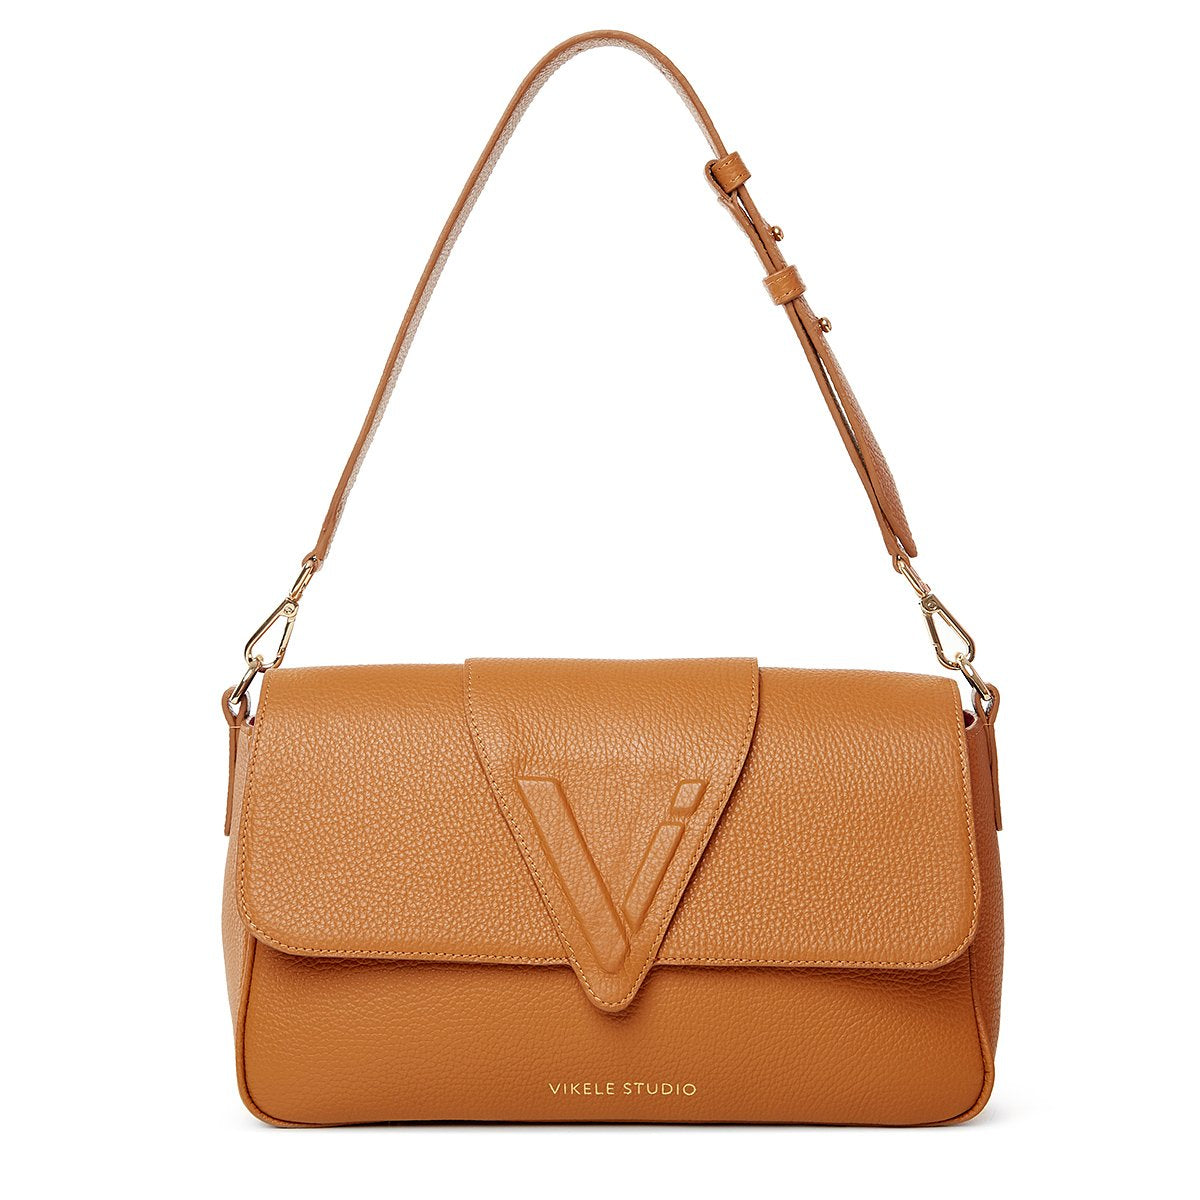 NAME BAG DARK ORANGE